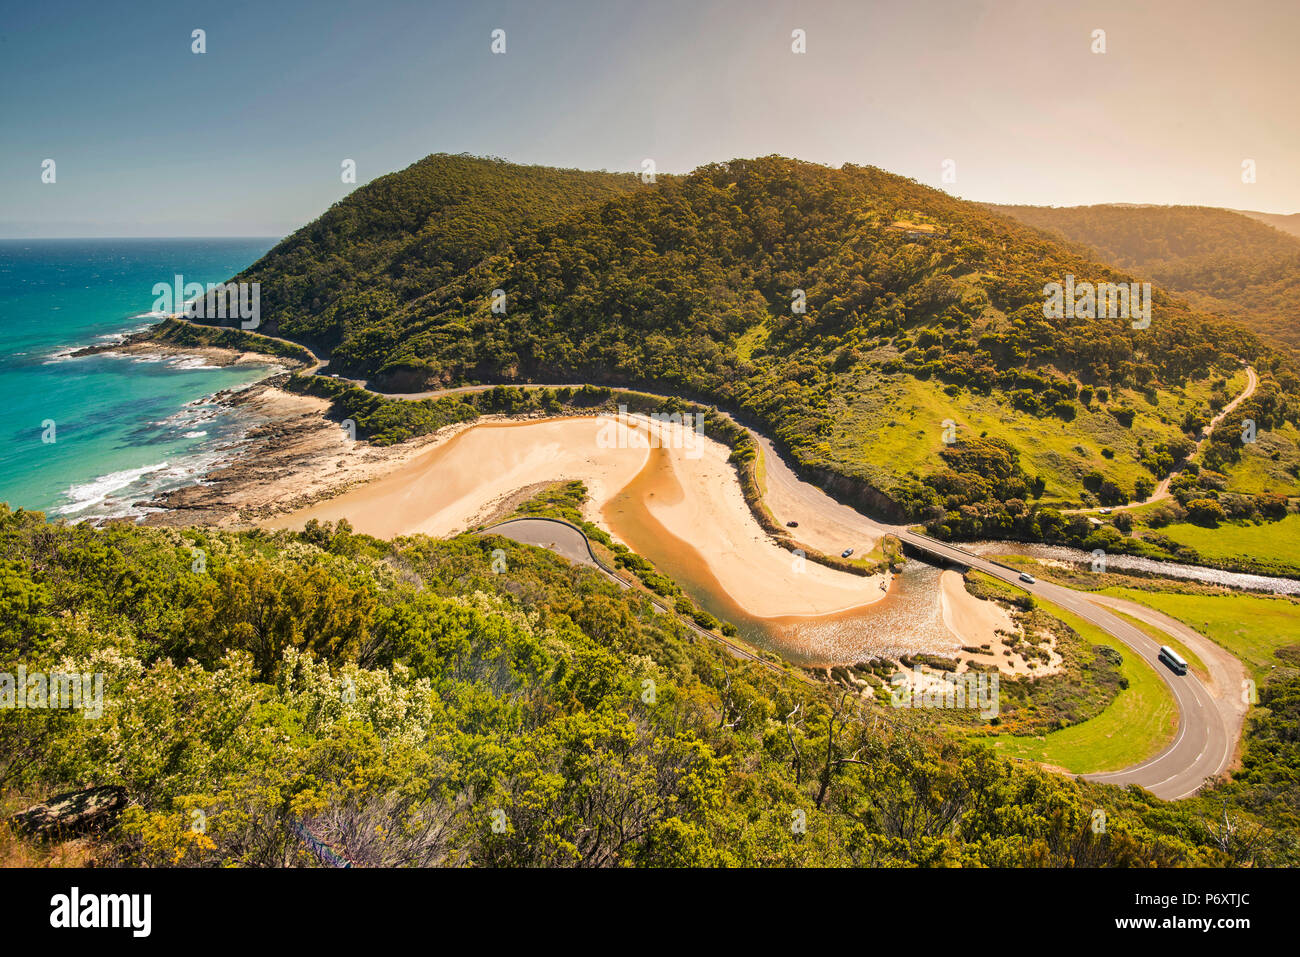 Great Ocean Road, Victoria, Australia. High angle view at sunset. - Stock Image